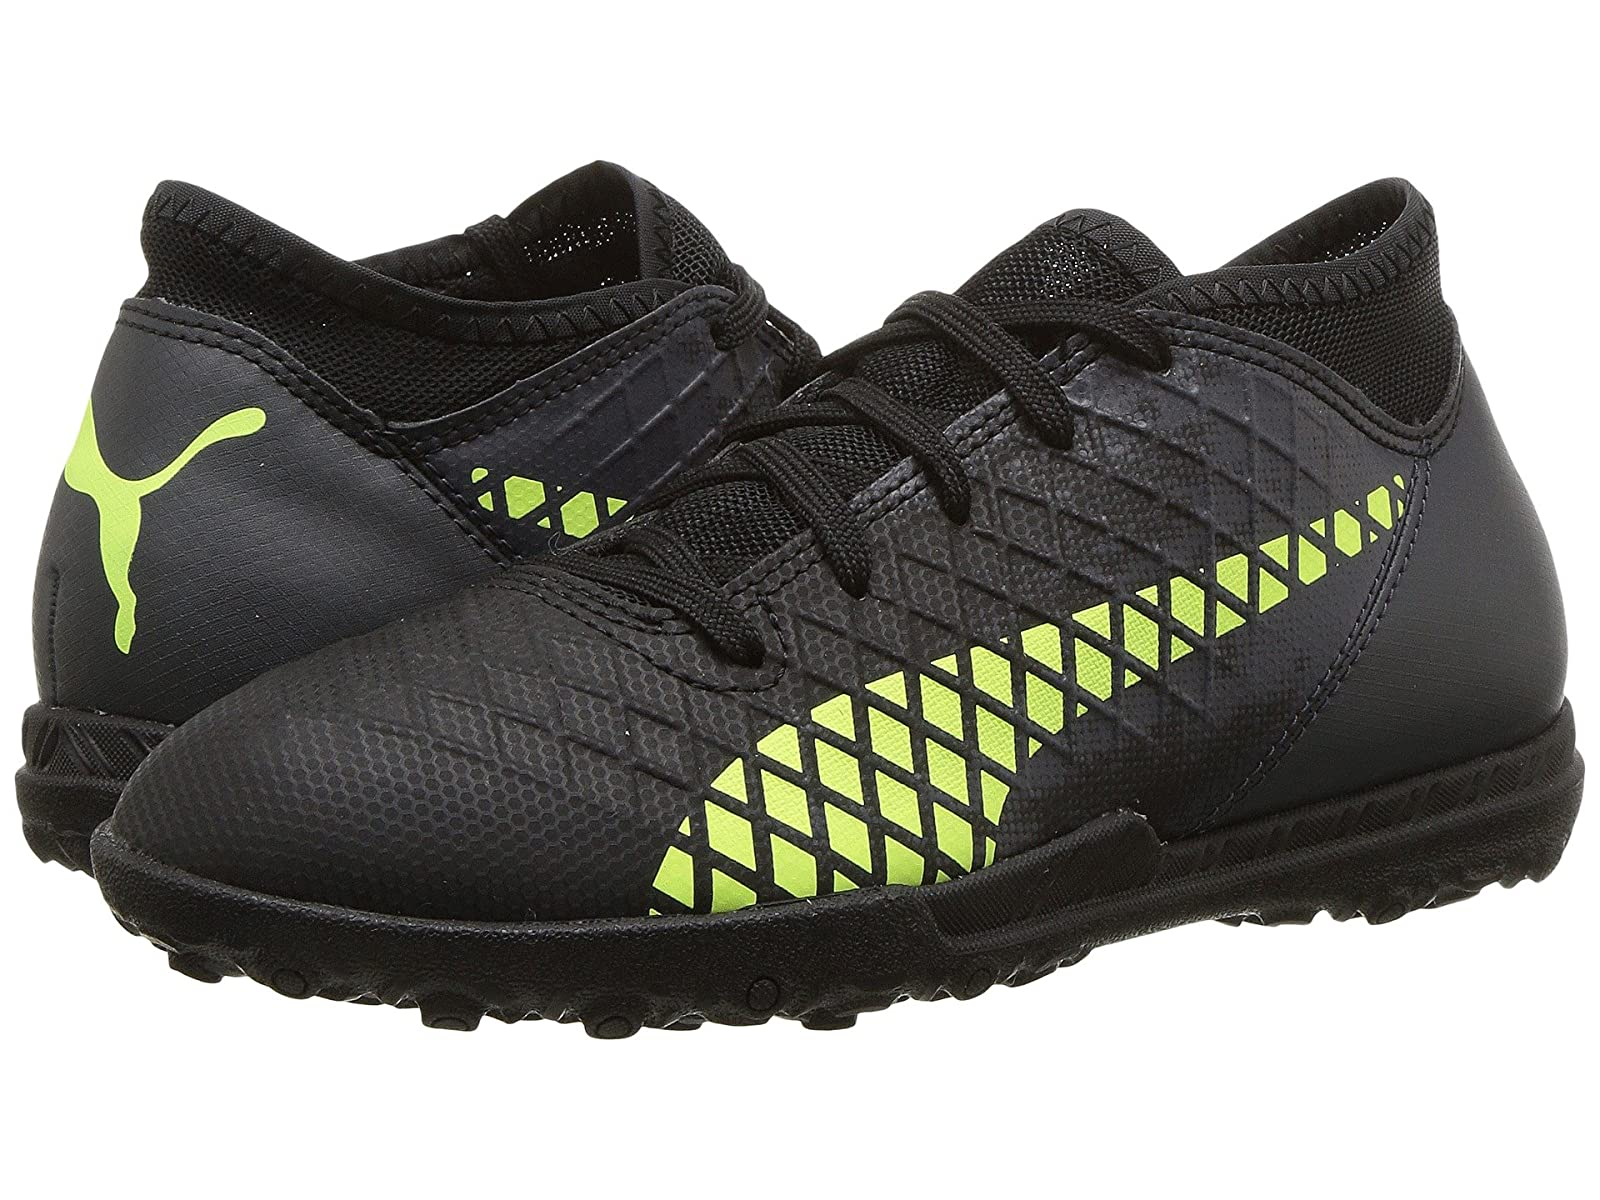 Puma Kids Future 18.4 TT Soccer (Little Kid/Big Kid)Cheap and distinctive eye-catching shoes